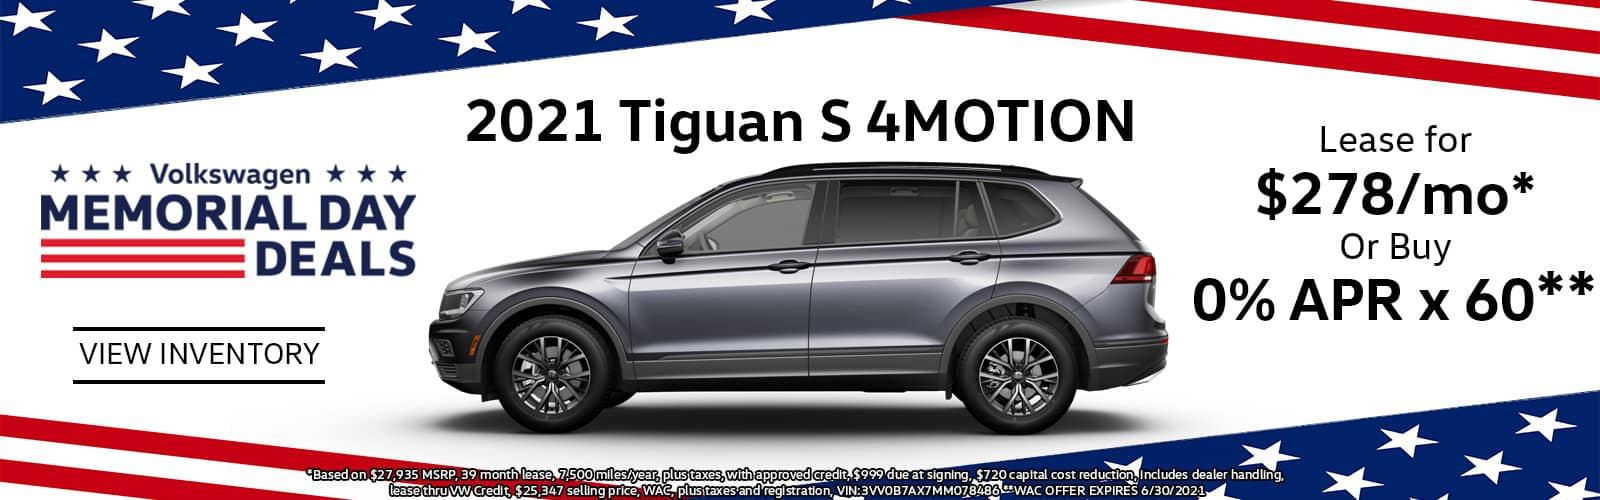 2021 VW Tiguan Lease or Buy Special